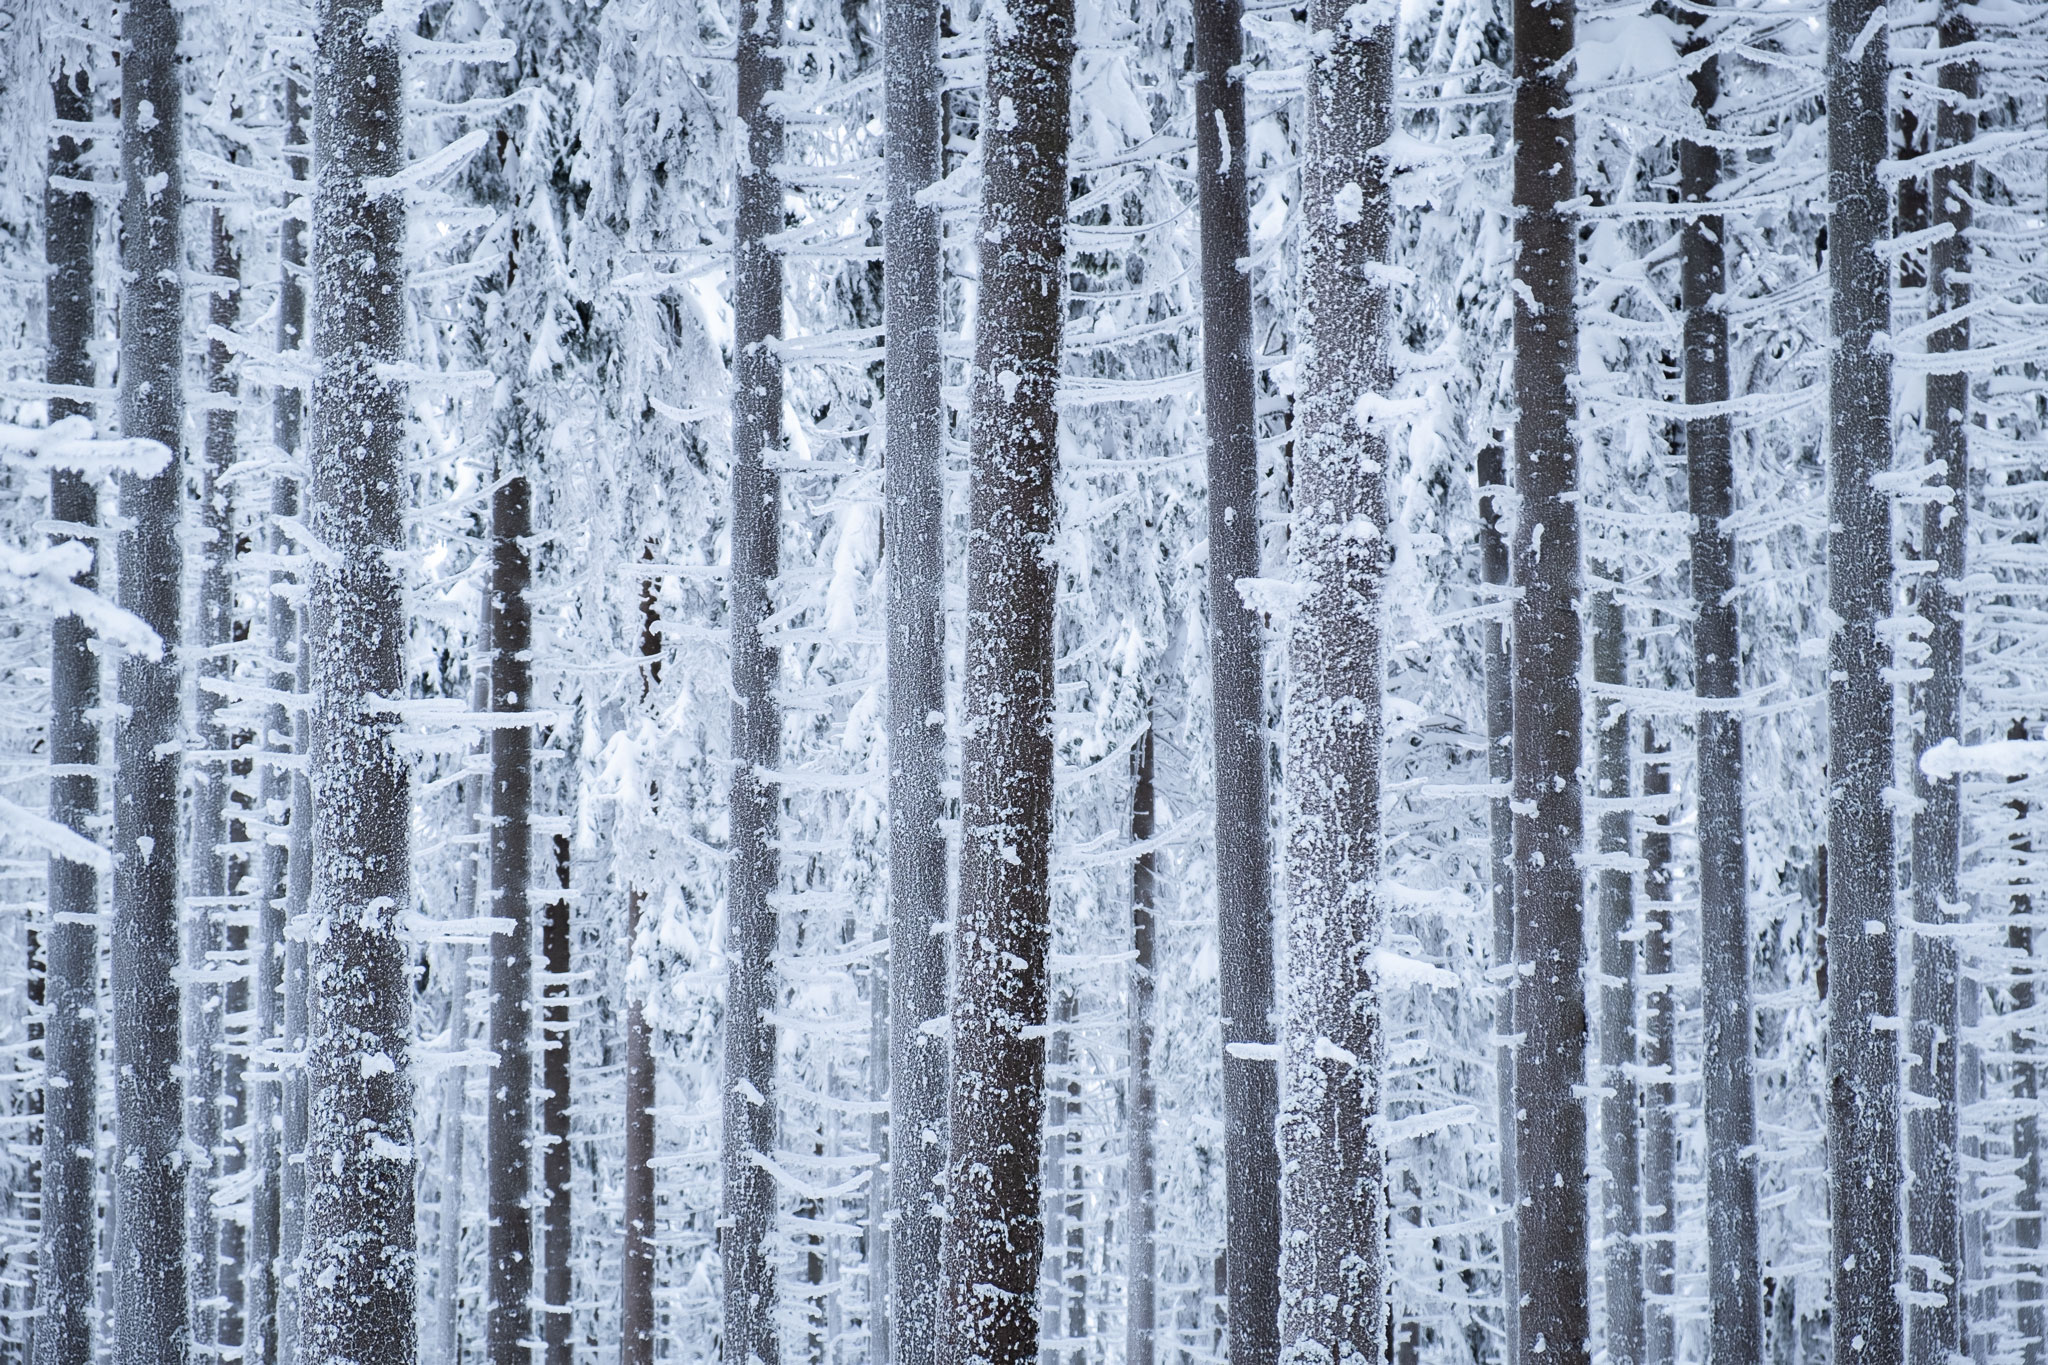 ABSTRACT-FROZEN-FOREST-POLAND